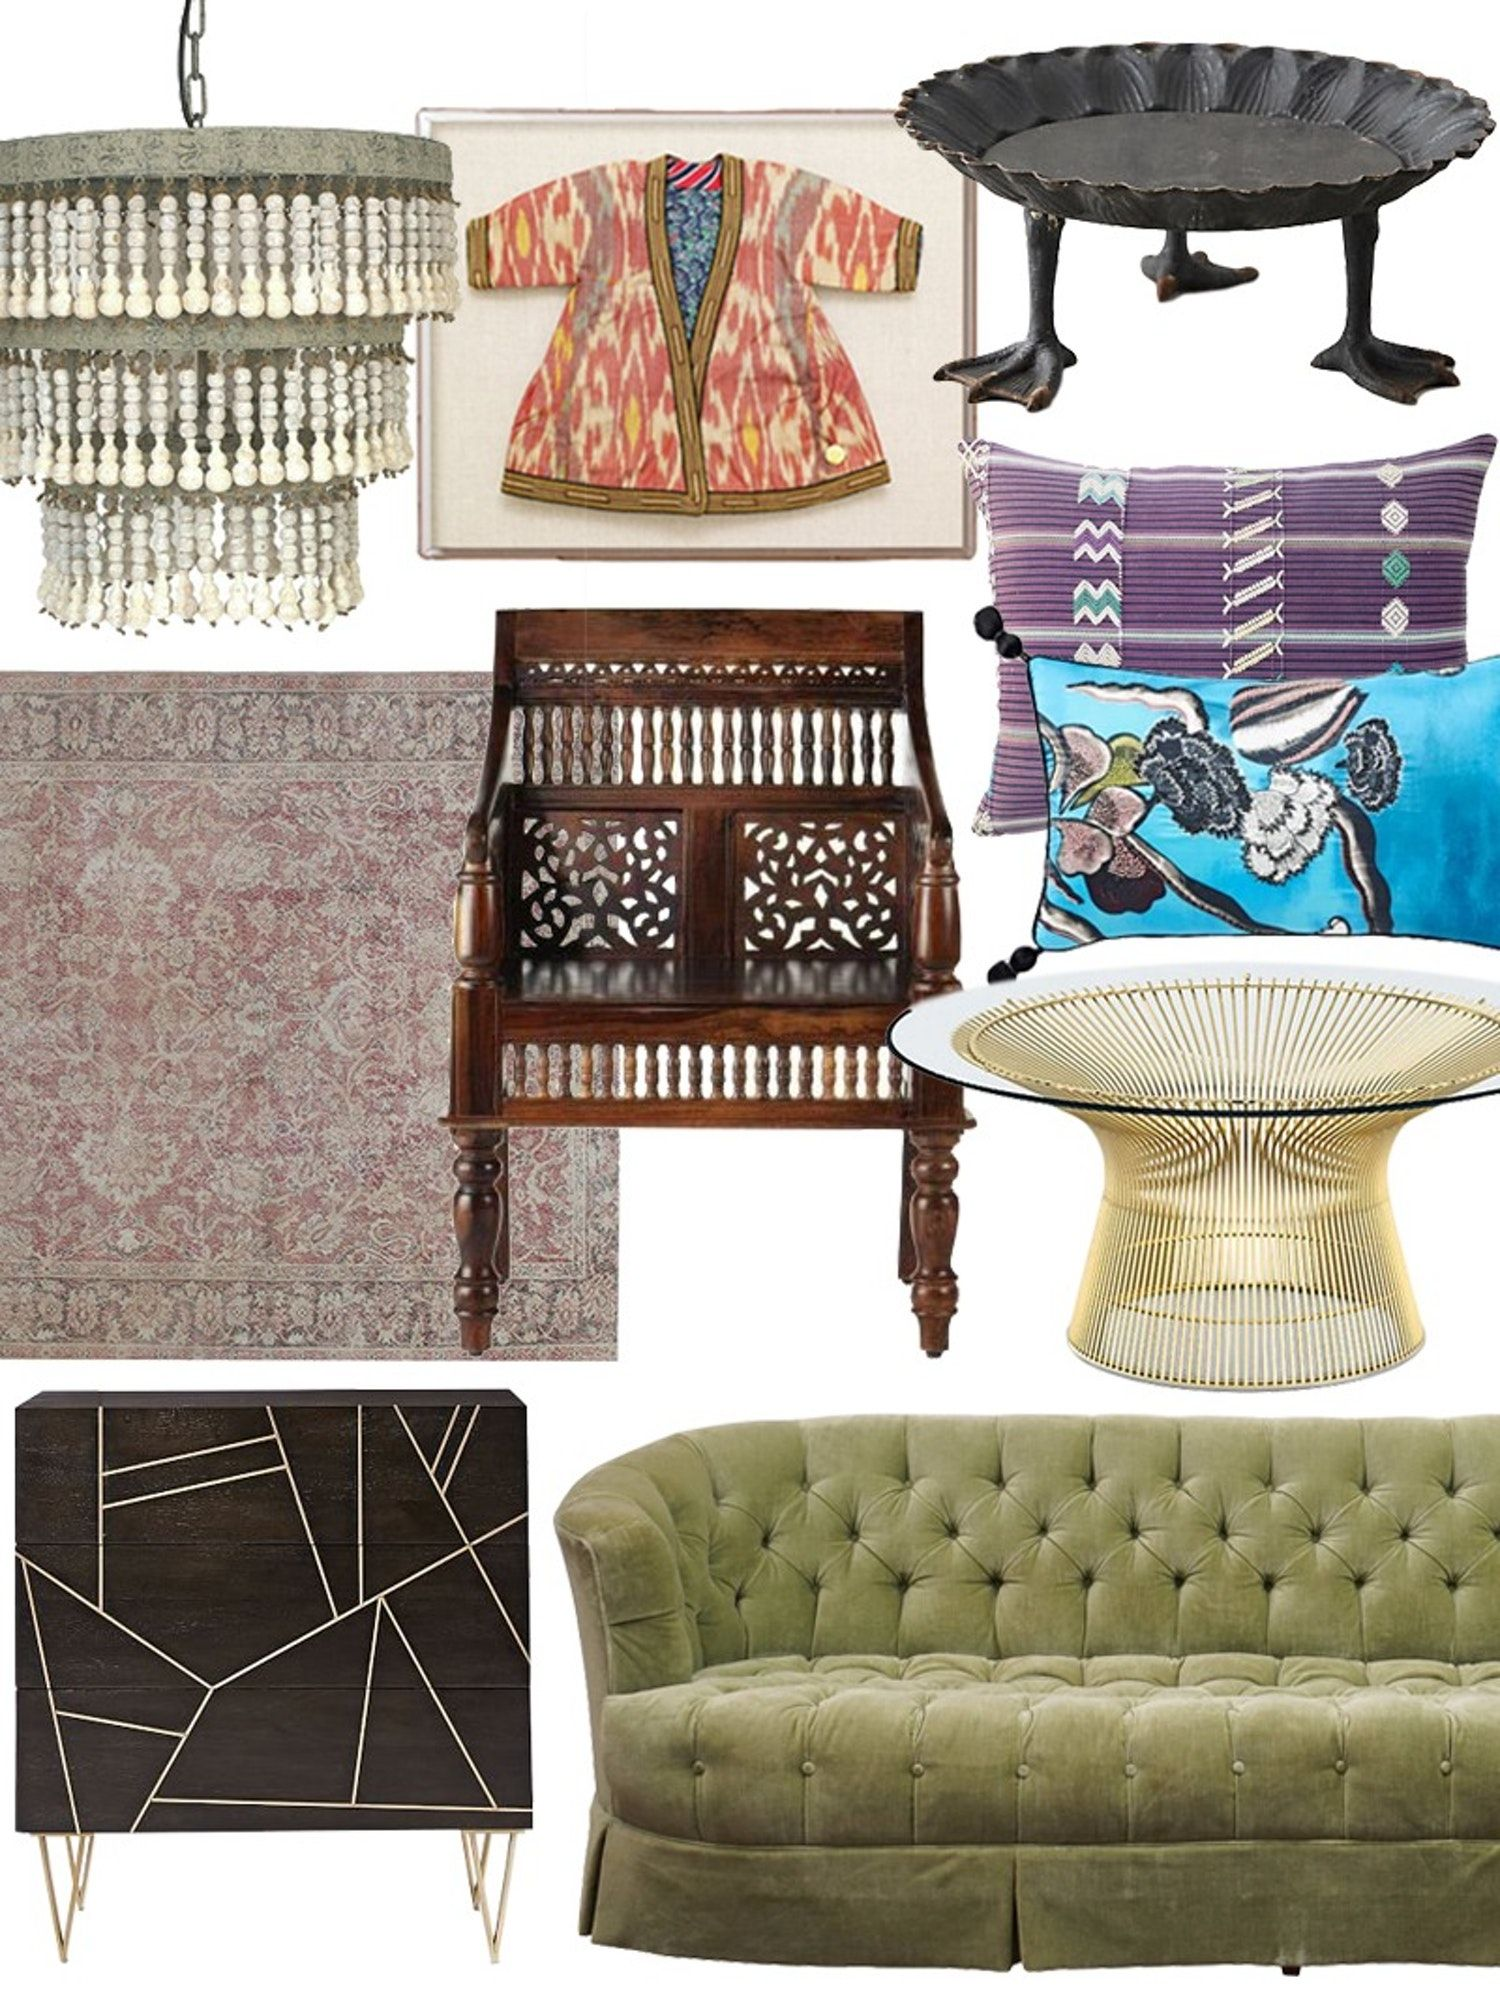 Create the Look: Eclectic Collector Living Room Shopping Guide